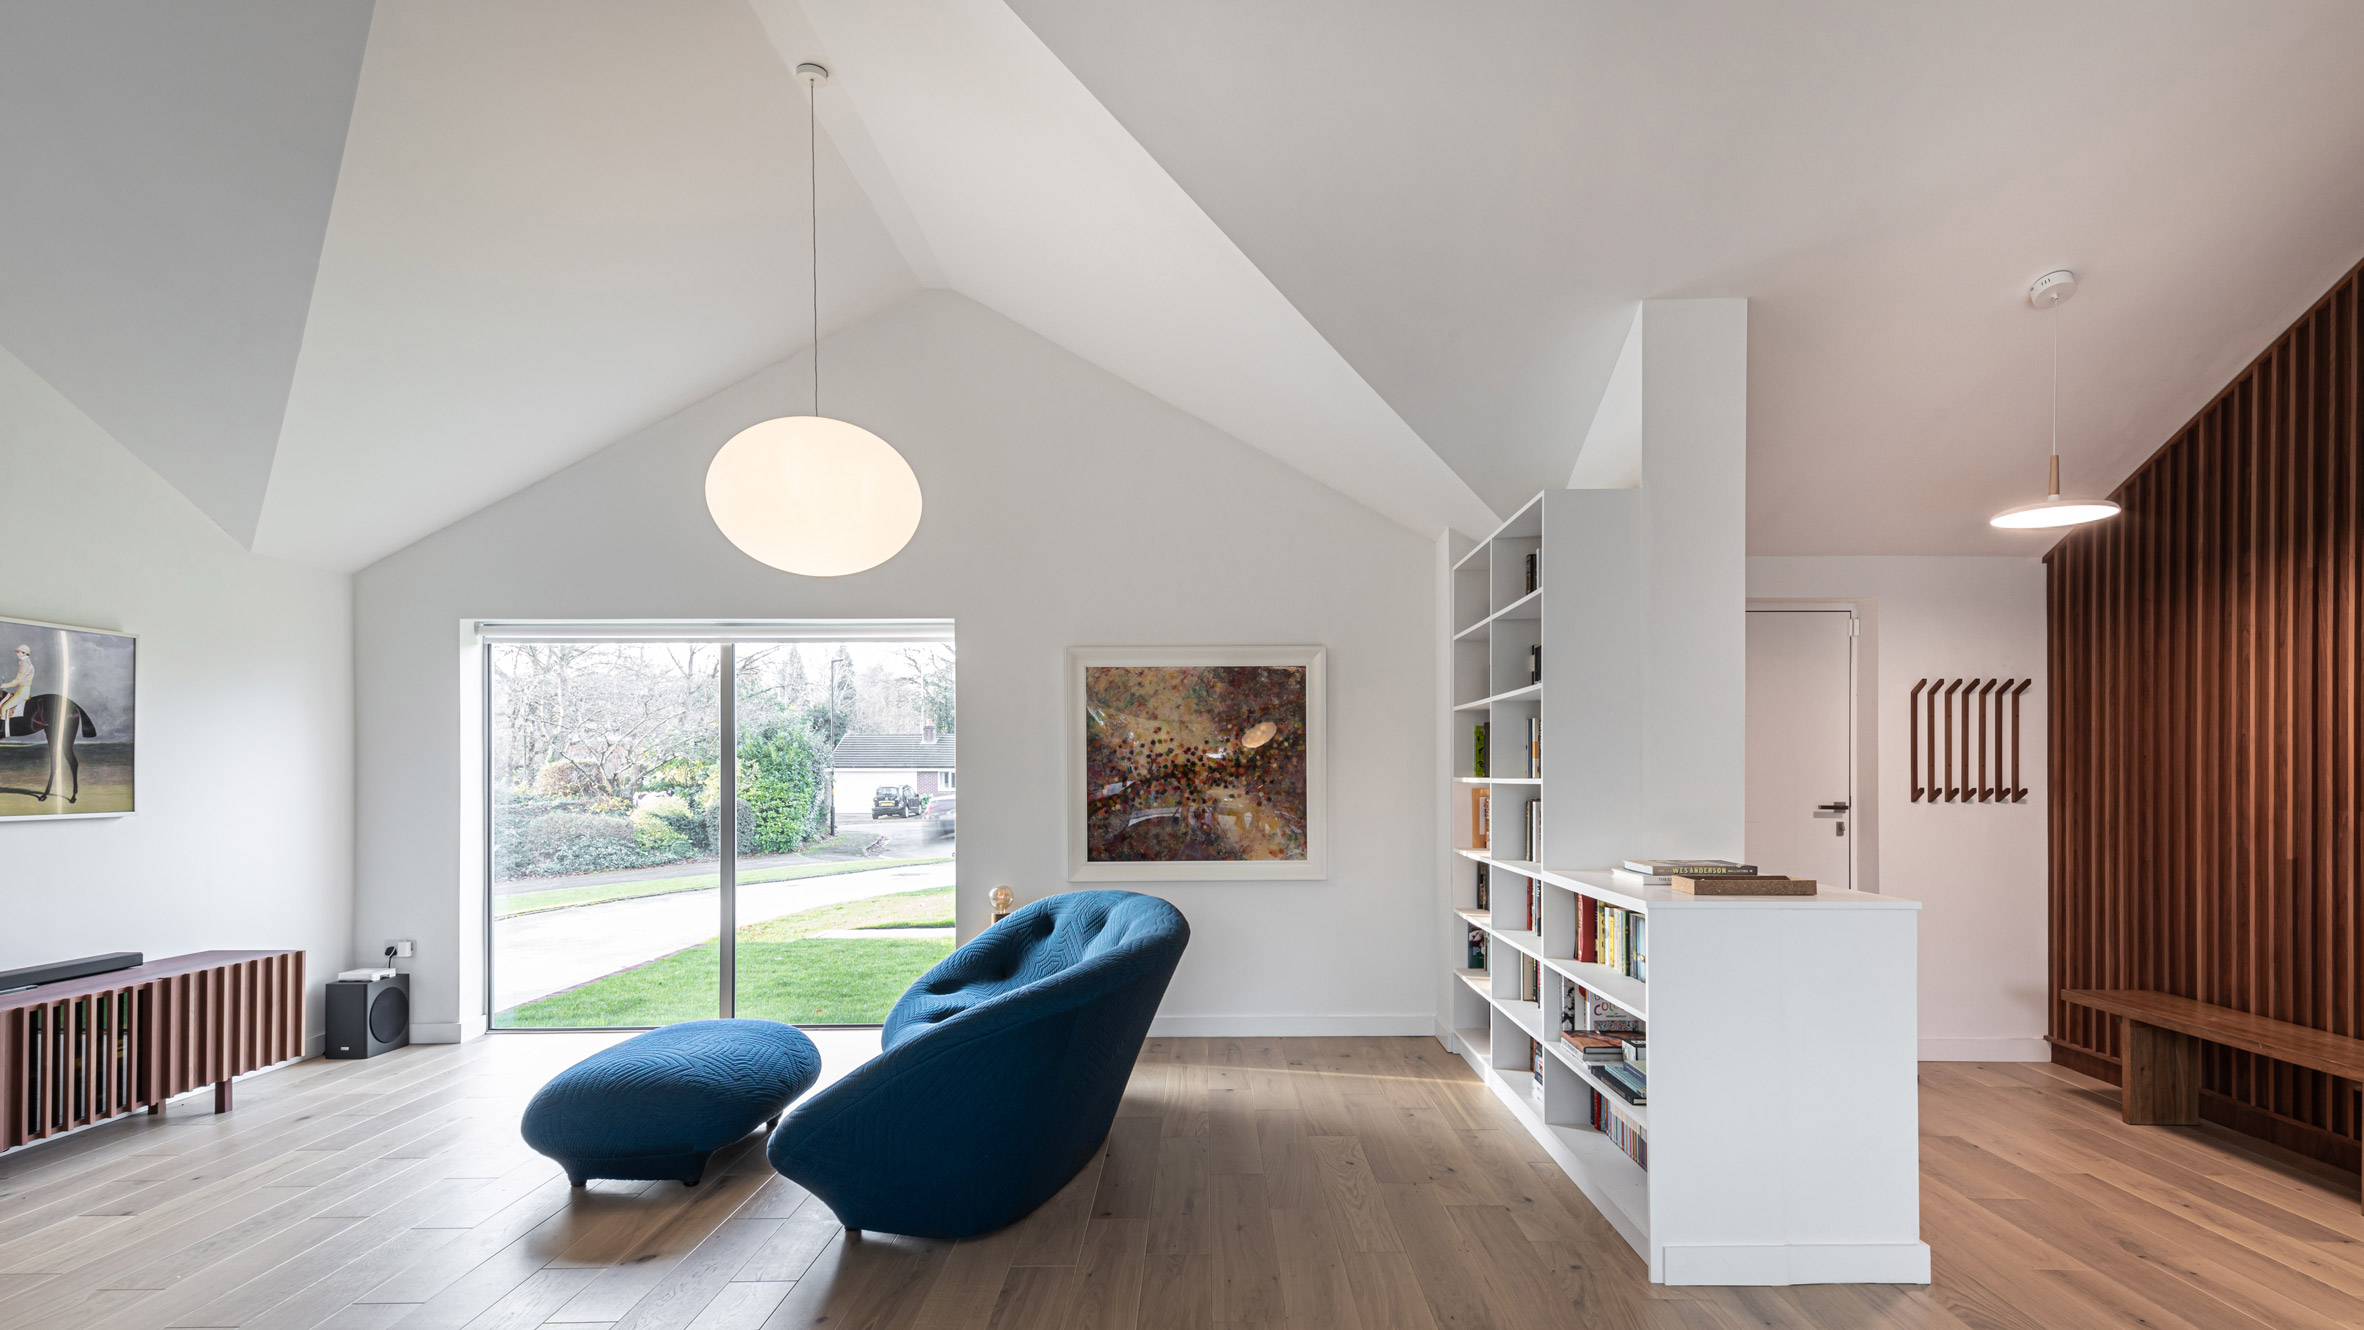 1970s Bungalow conversion